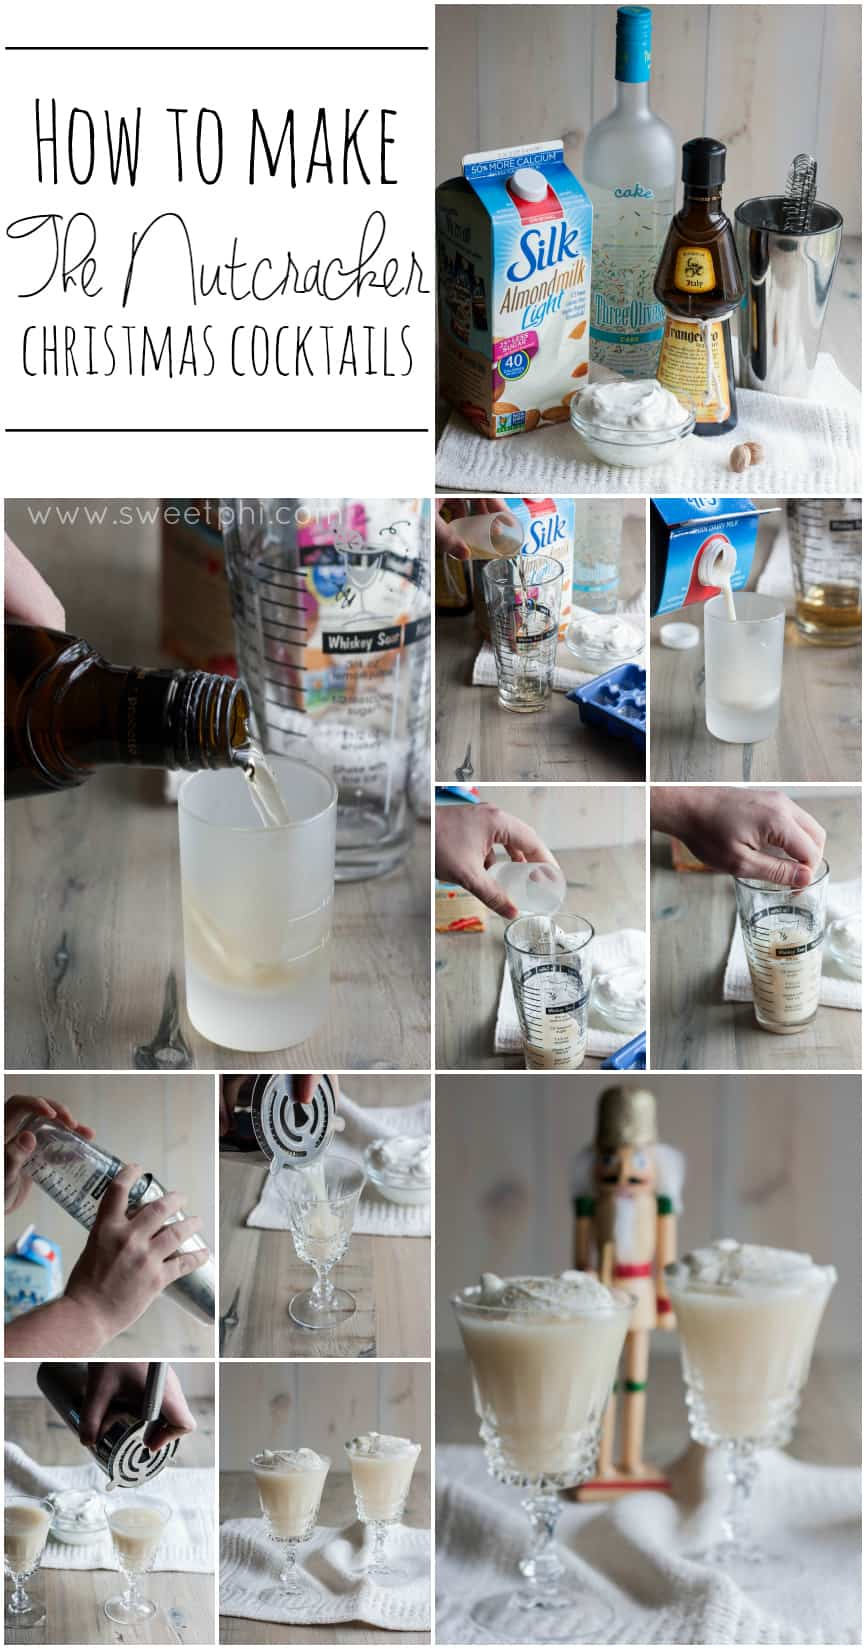 How-to-make-the-nutcracker-Christmas-cocktails